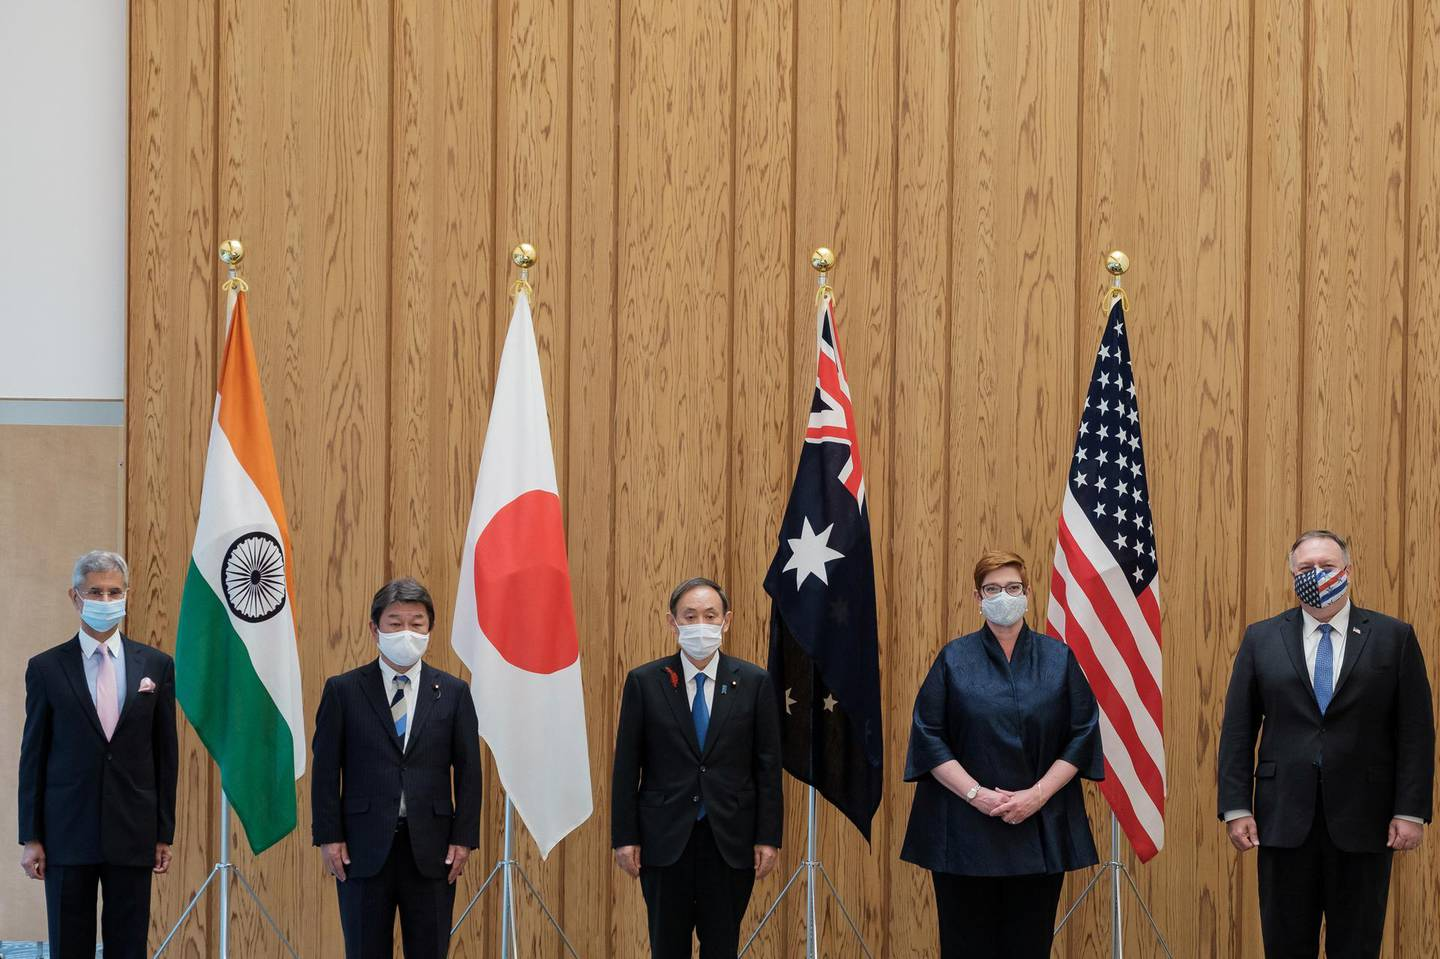 India's Foreign Minister Subrahmanyam Jaishankar, Japan's counterpart Toshimitsu Motegi, Japan's Prime Minister Yoshihide Suga, Australian Foreign Minister Marise Payne and U.S. Secretary of State Mike Pompeo pose for a picture before the meeting at the prime miniter's office in Tokyo, Japan October 6, 2020.  Nicolas Datiche/Pool via REUTERS